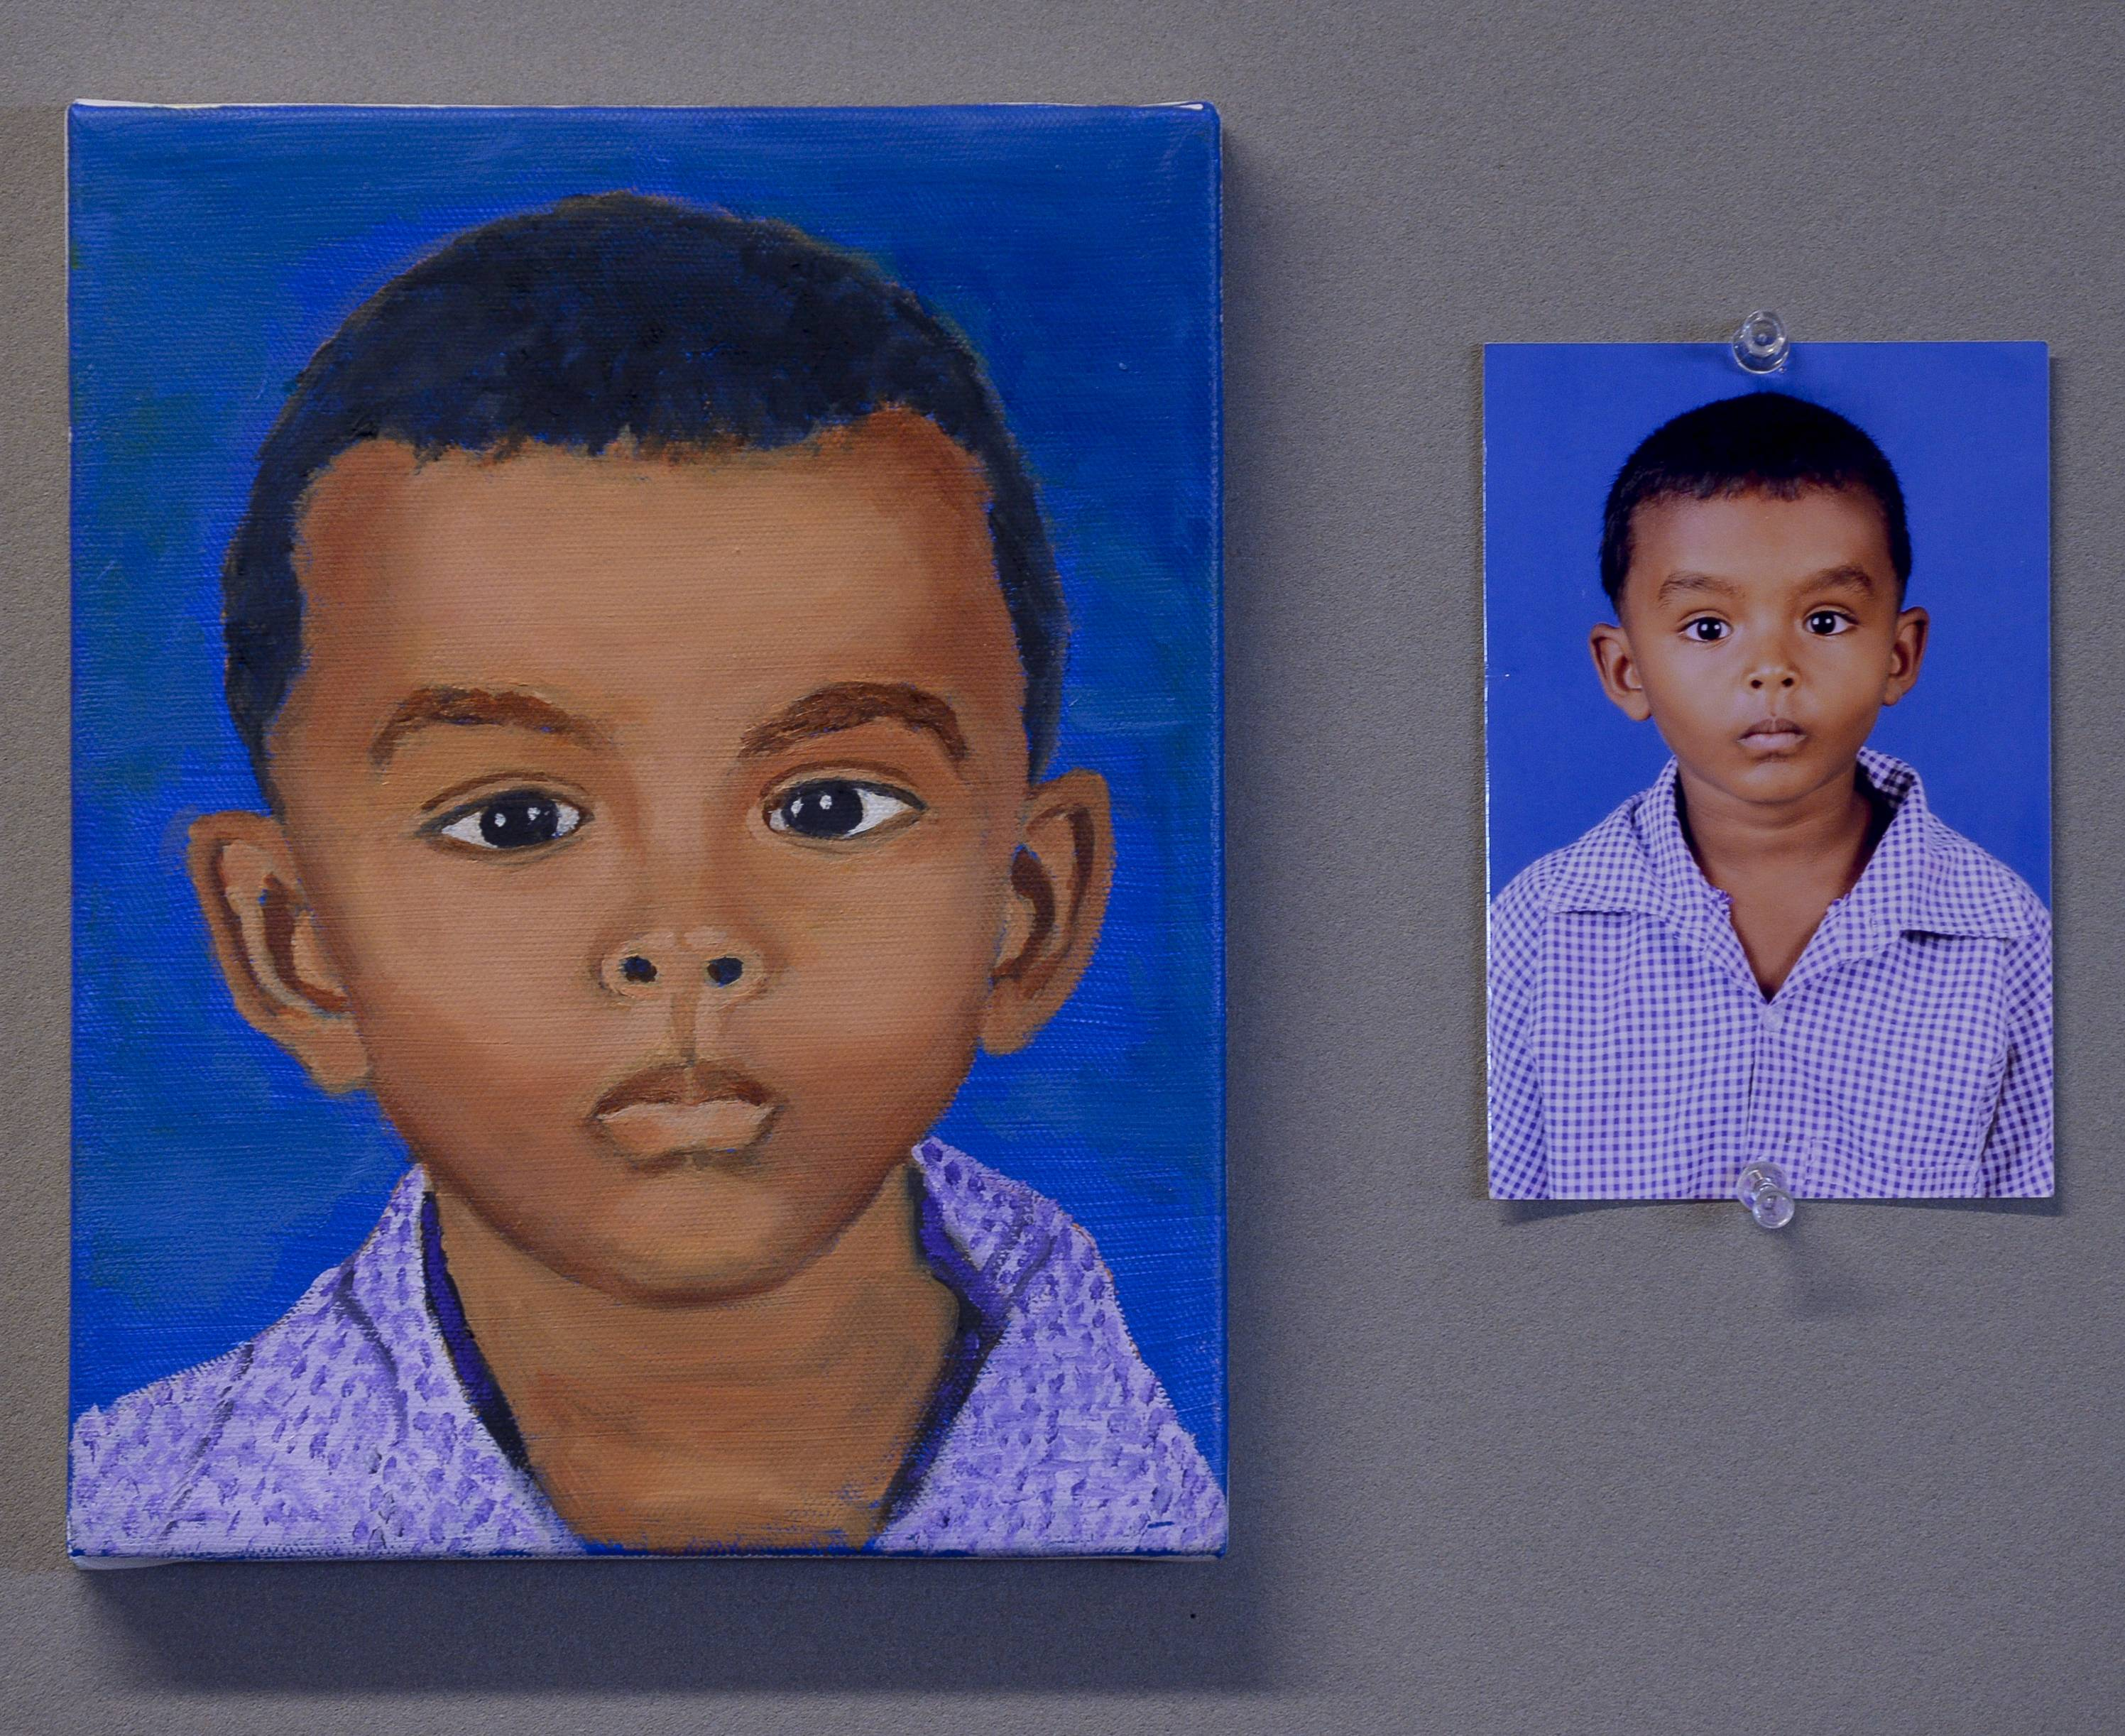 A portrait and the source photograph of a Sri Lankan child. Each portrait shows a child against a blue background and wearing a checkered school uniform, yet each picture shows the student painter's individual style, says Jennifer Hereth, the art professor that led the project.